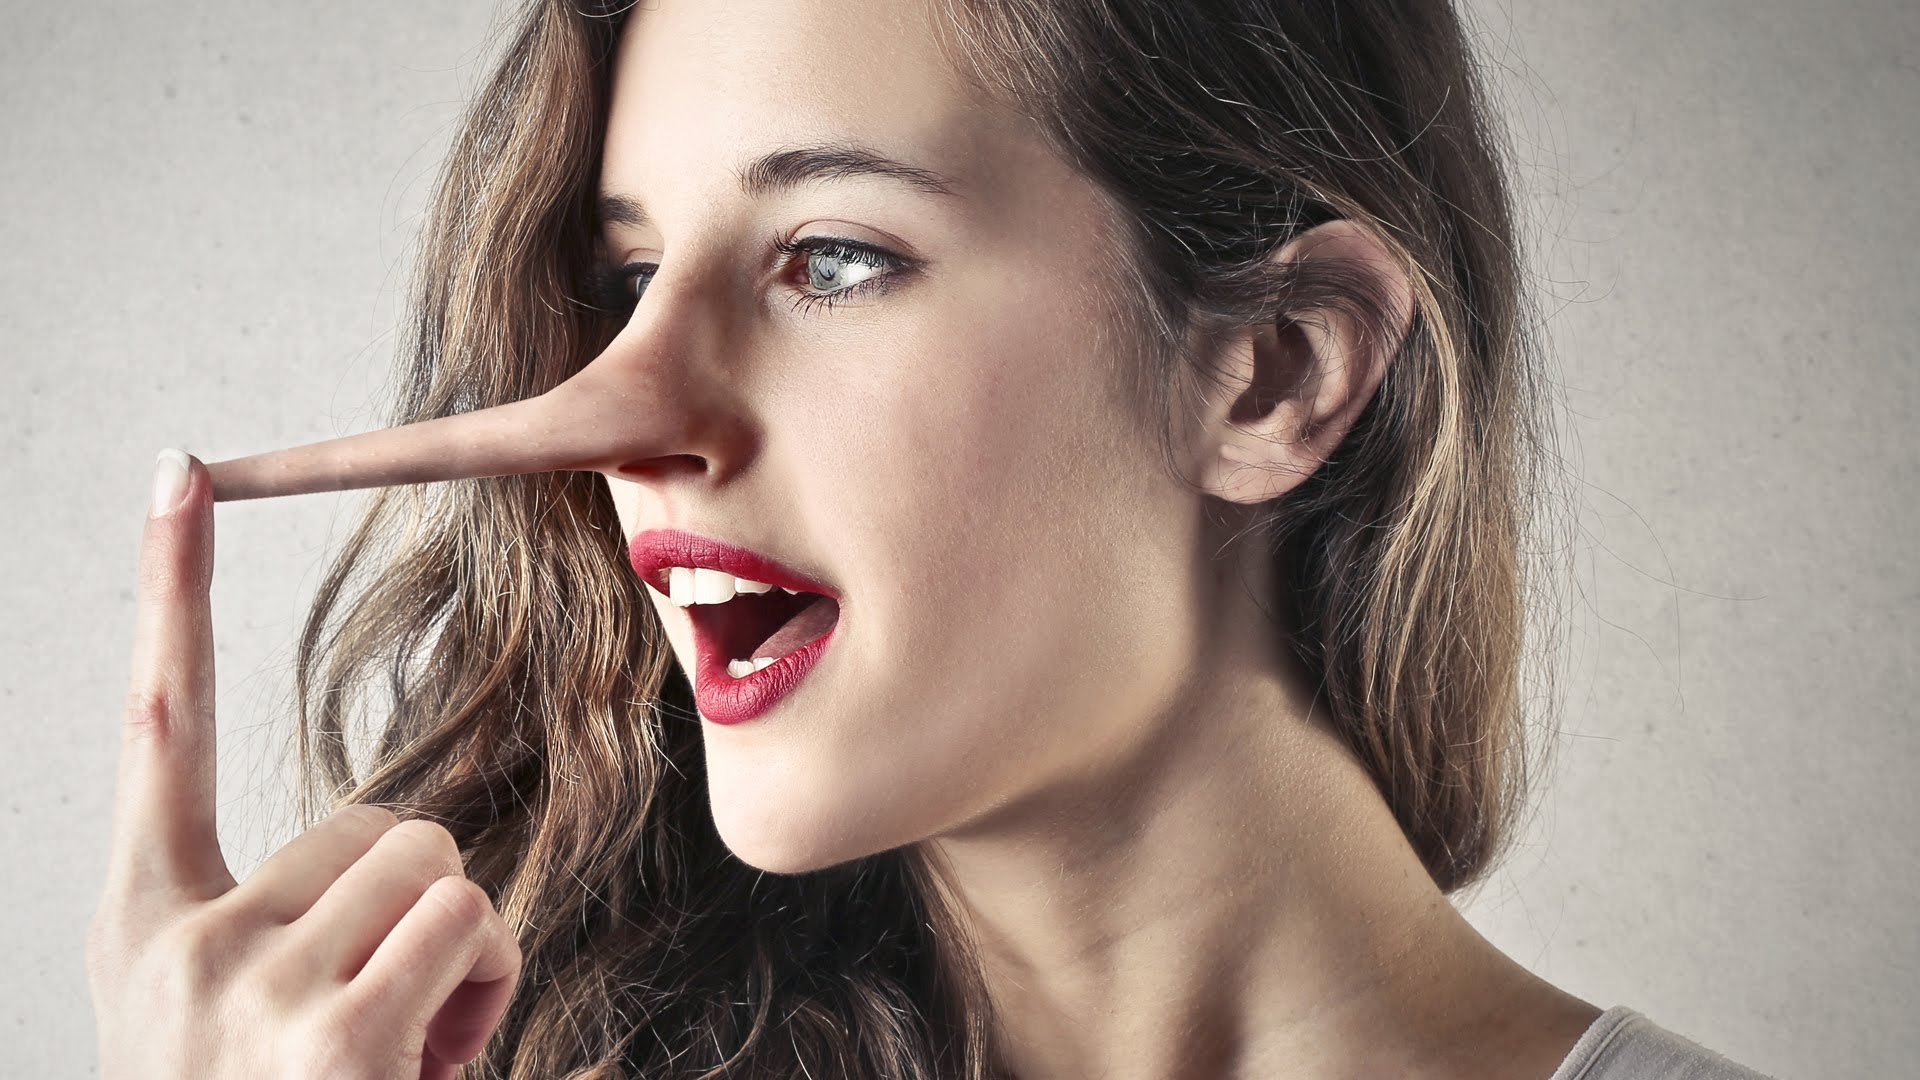 How to know a girl is lying